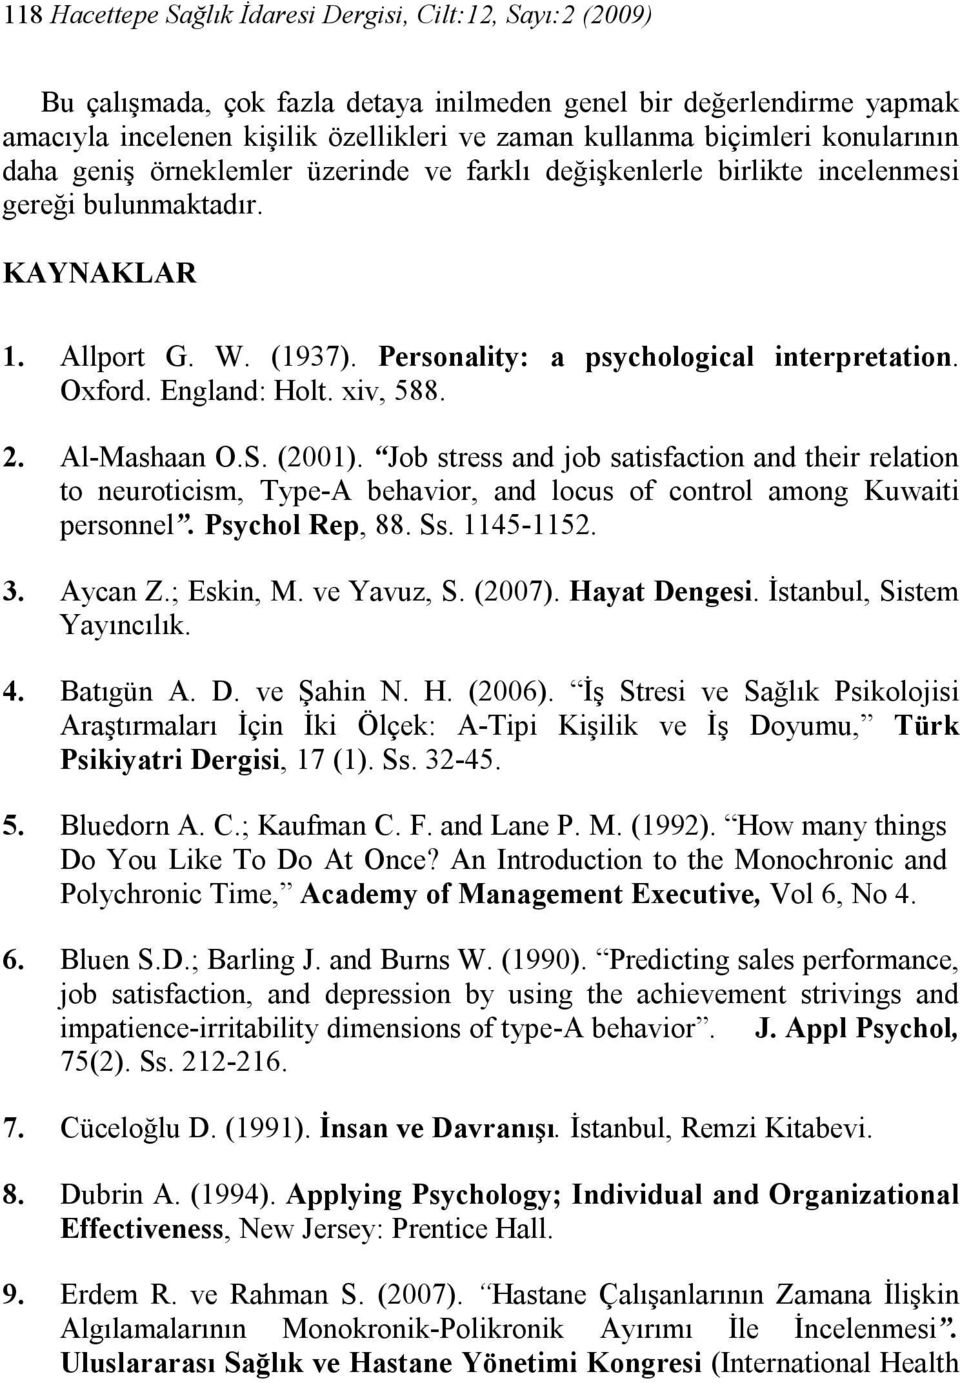 England: Holt. xiv, 588. 2. Al-Mashaan O.S. (2001). Job stress and job satisfaction and their relation to neuroticism, Type-A behavior, and locus of control among Kuwaiti personnel. Psychol Rep, 88.